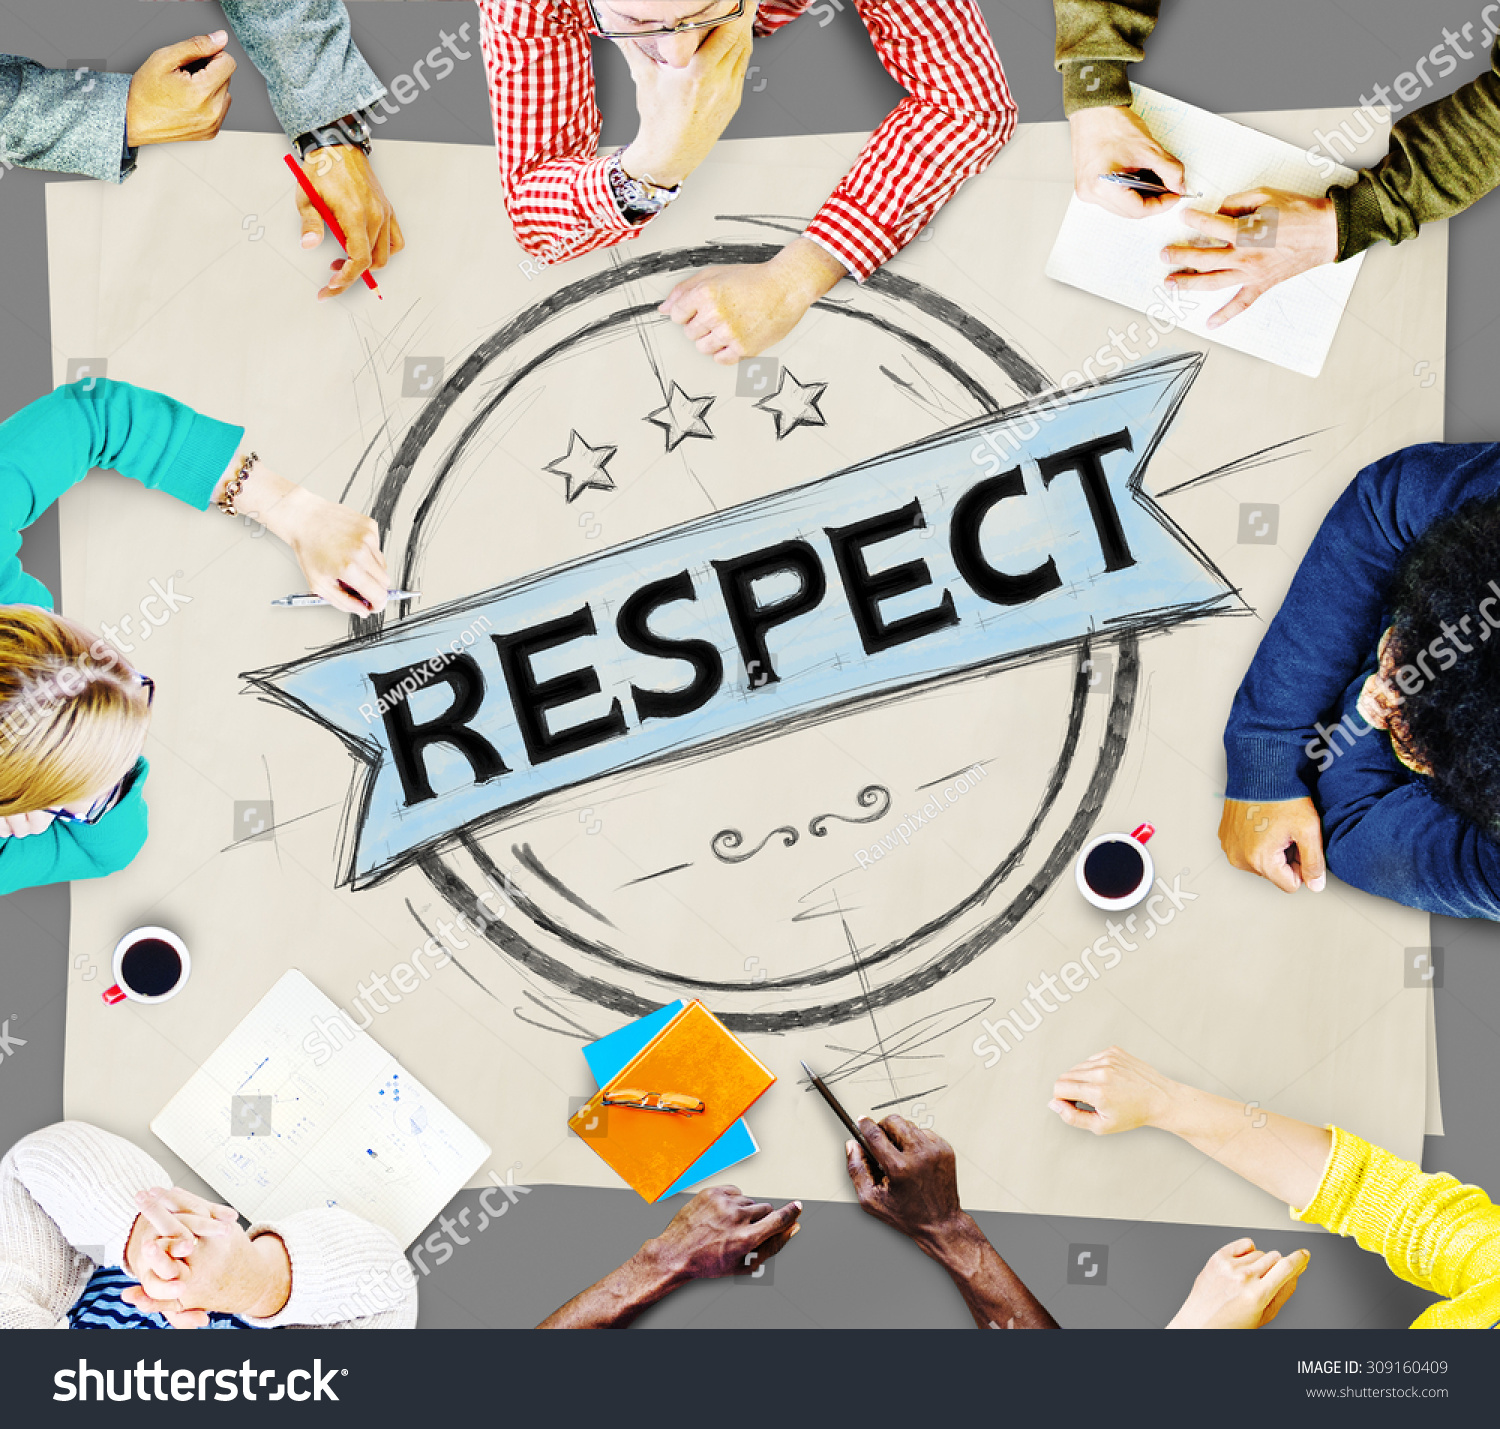 Respect Honesty Honorable Regard Integrity Concept Stock Photo 309160409 : Shutterstock